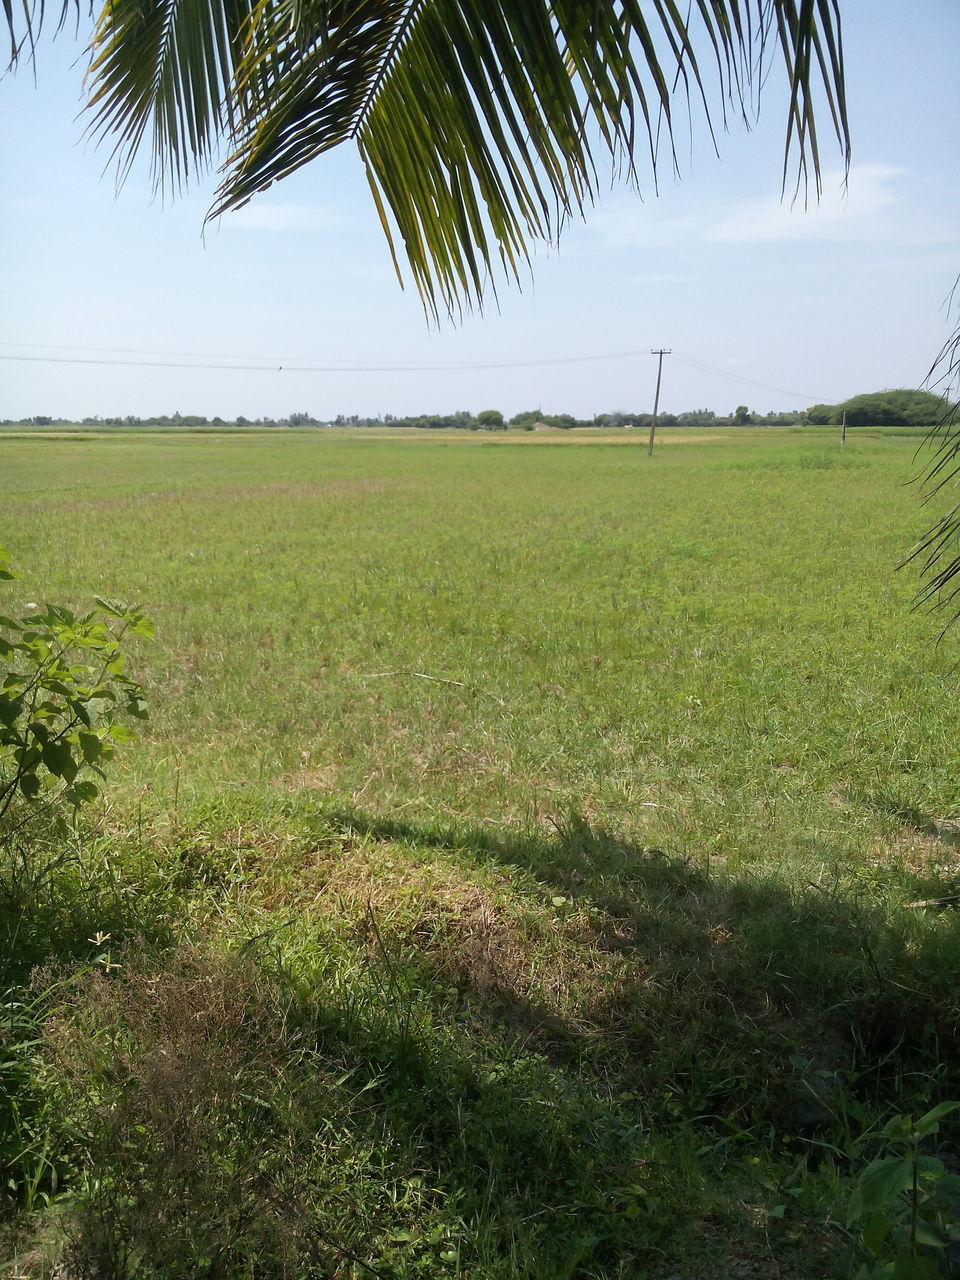 grass, nature, field, scenics, tranquility, tranquil scene, landscape, growth, tree, beauty in nature, sky, no people, green color, outdoors, day, palm tree, sea